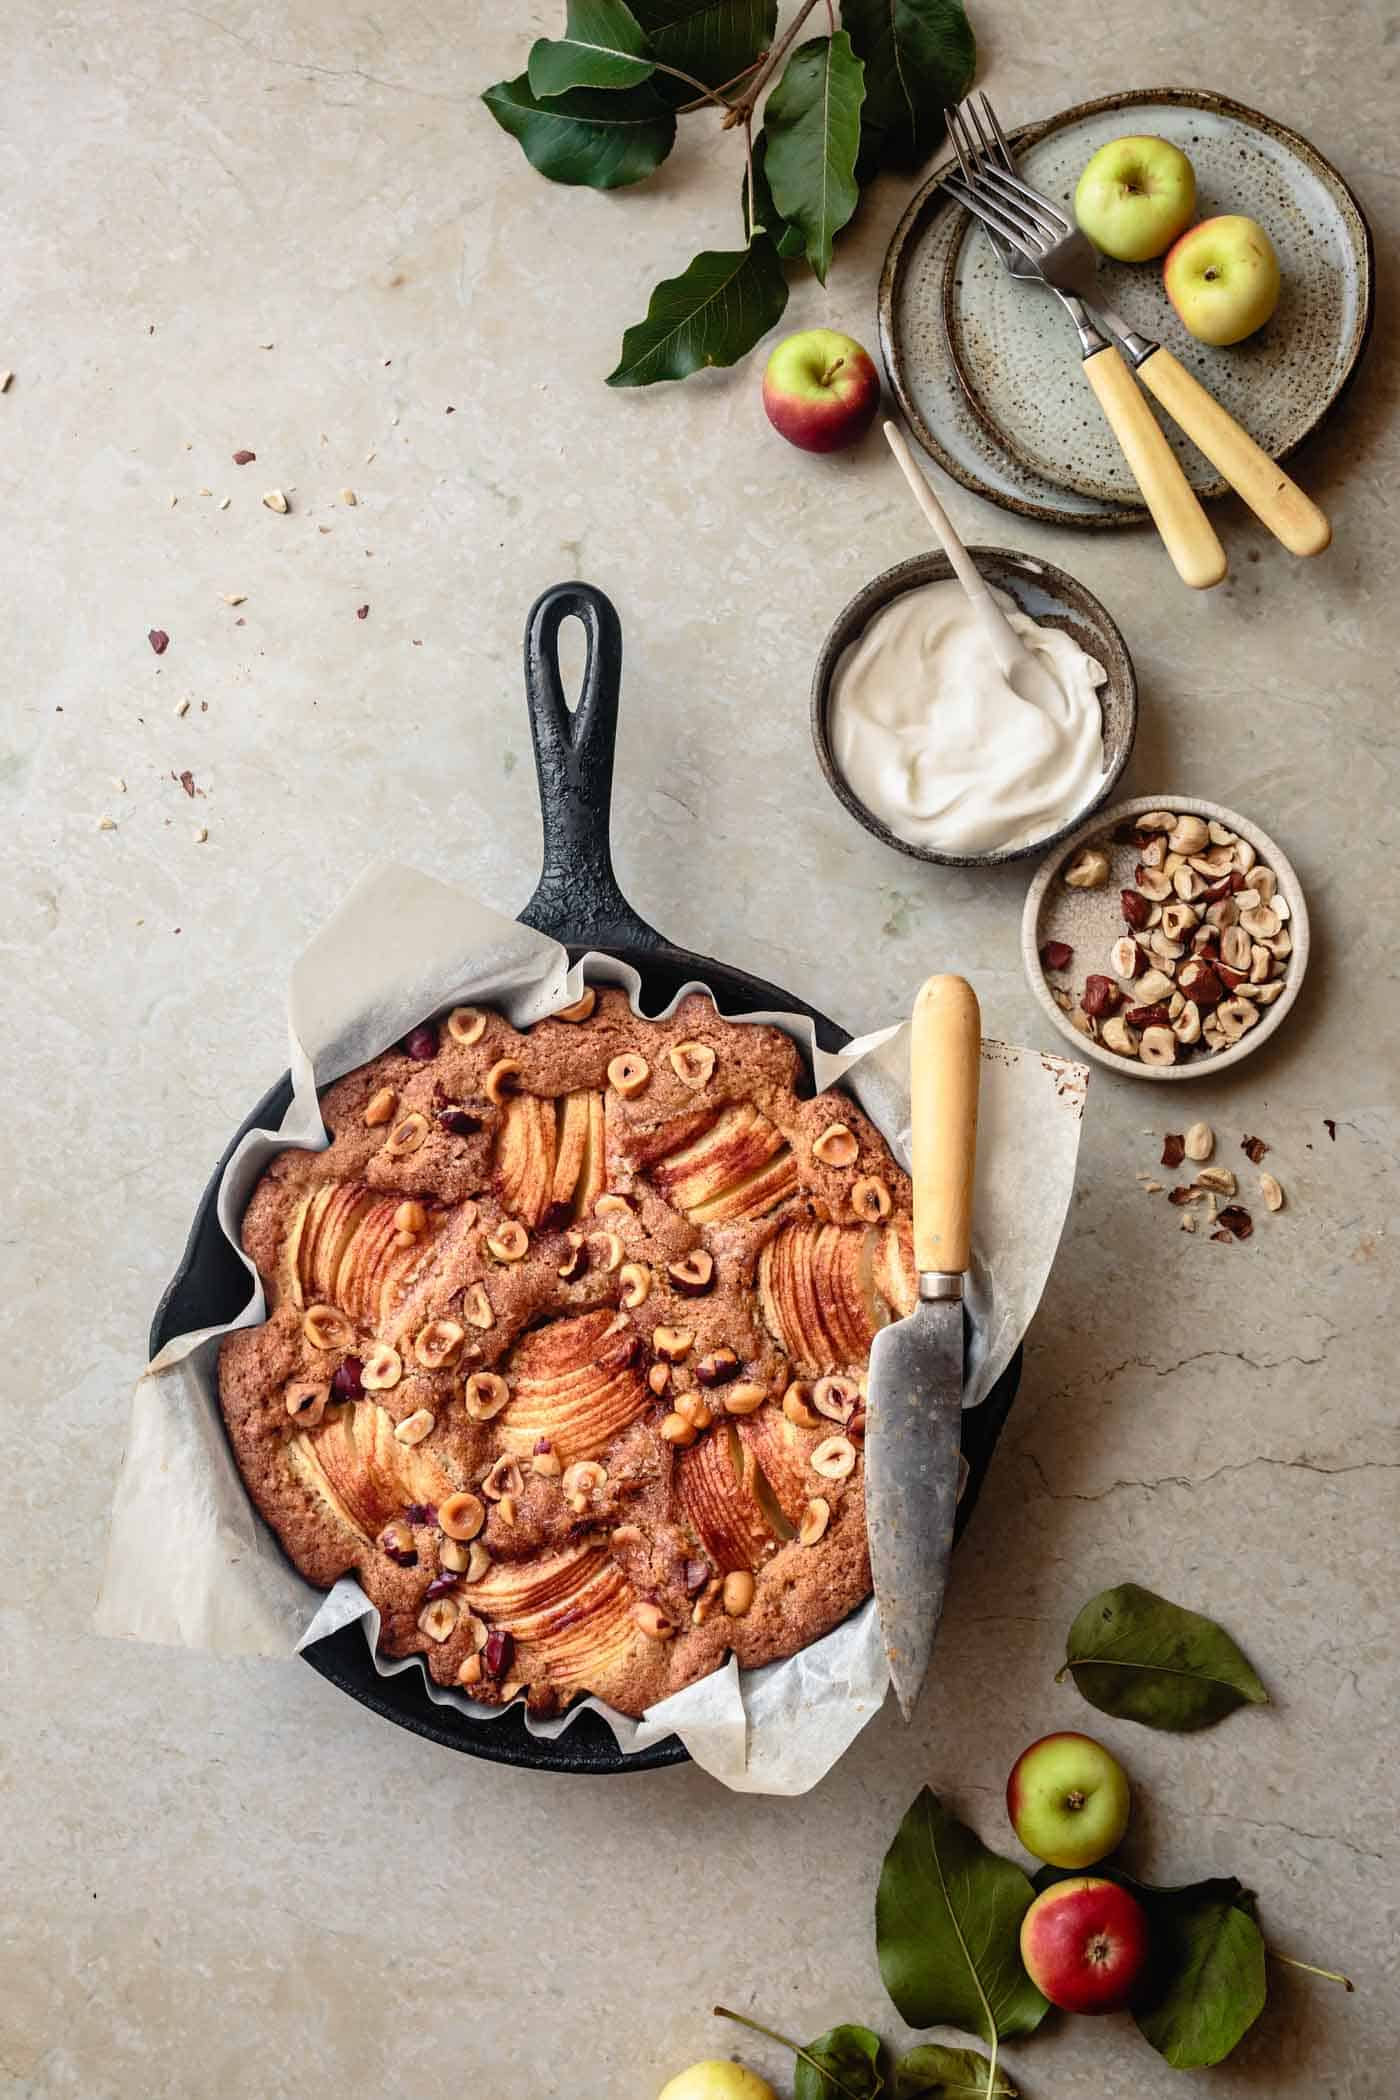 Gluten-free apple cake with brown butter and hazelnuts being served from a skillet